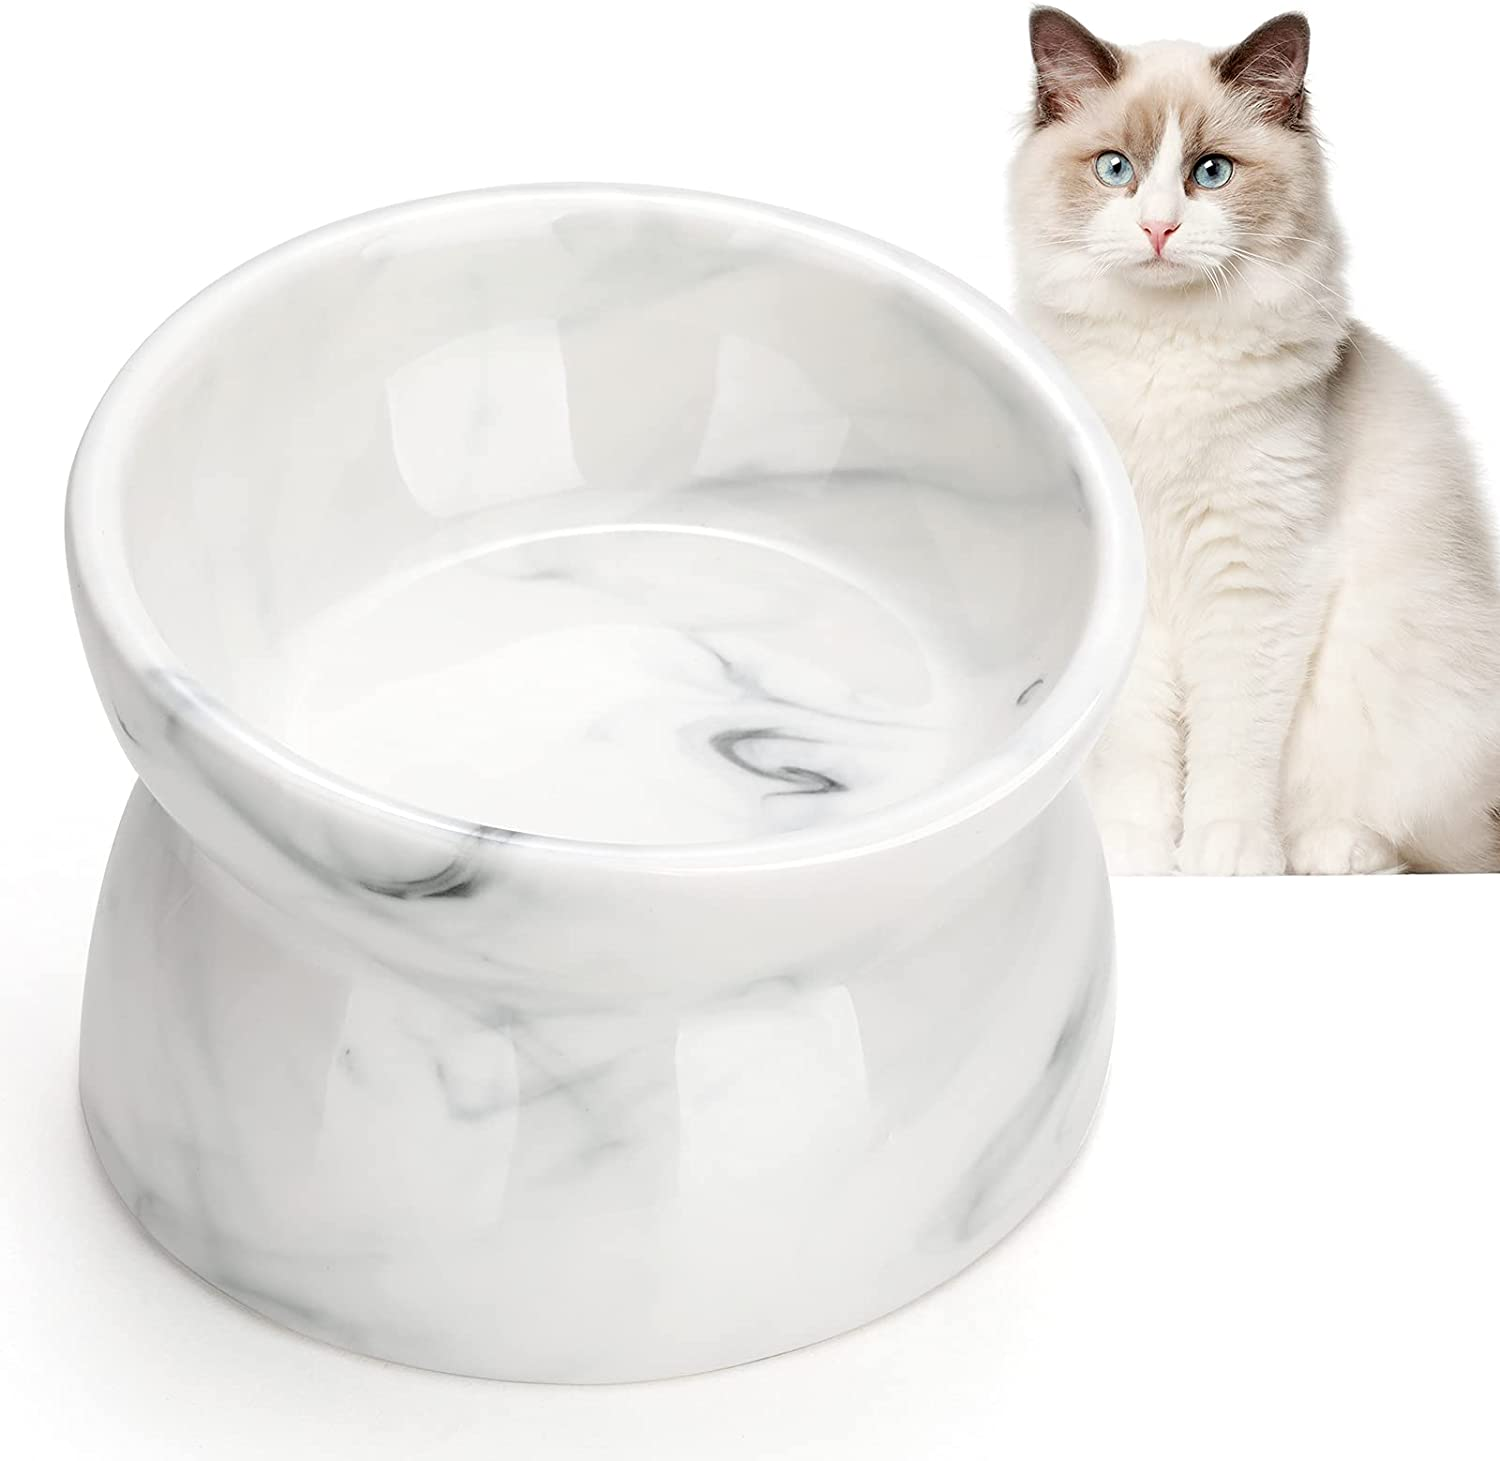 Sales results No. 1 Pawaboo Max 80% OFF Raised Cat Food Bowl Feeder Tilted Ceramic 15° Dis